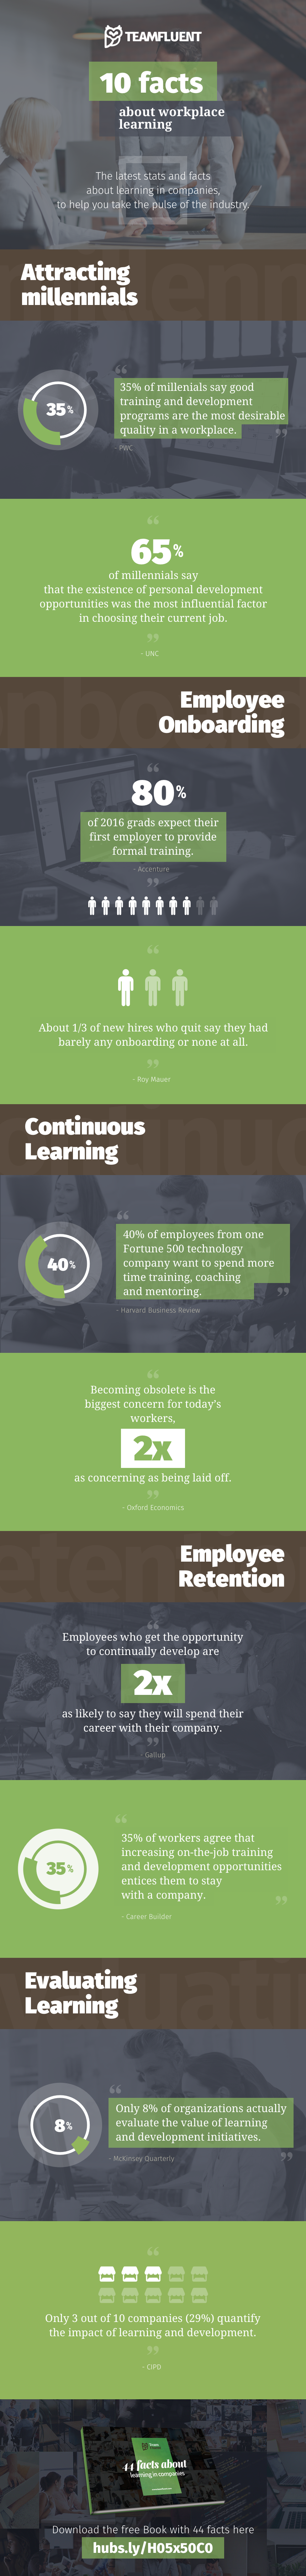 10 Workplace Learning Facts [Infographic]